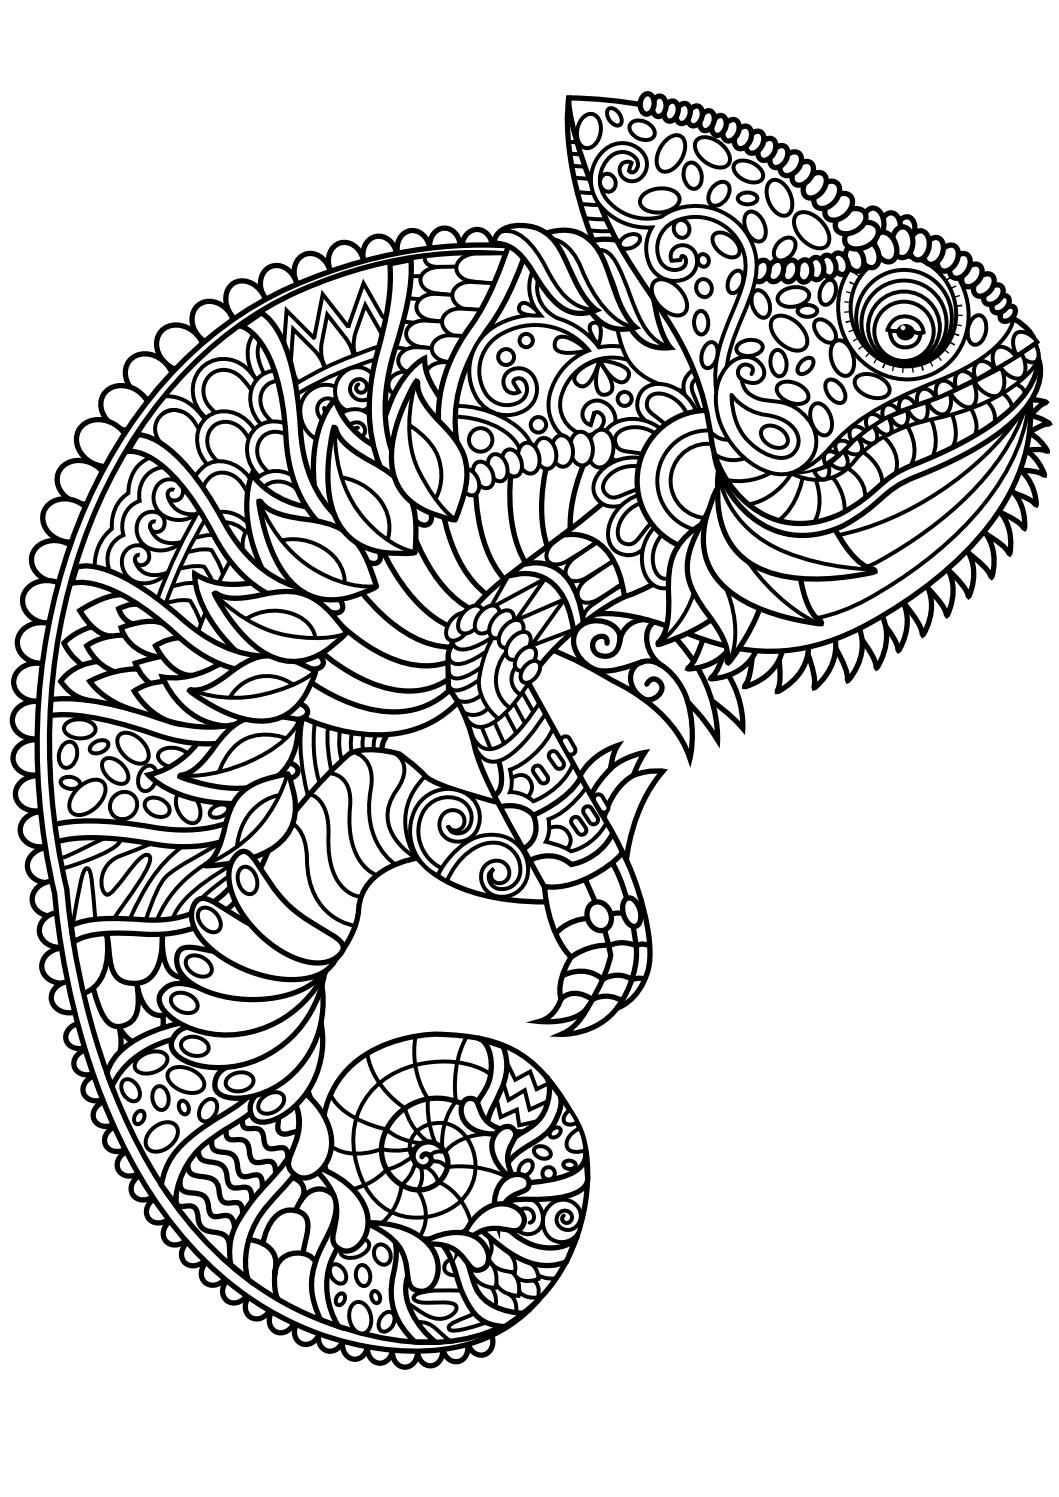 complicated animal coloring pages Download-Animal coloring pages pdf Animal Coloring Pages is a free adult coloring book with 20 different animal pictures to color horse coloring pages dog cat 13-a